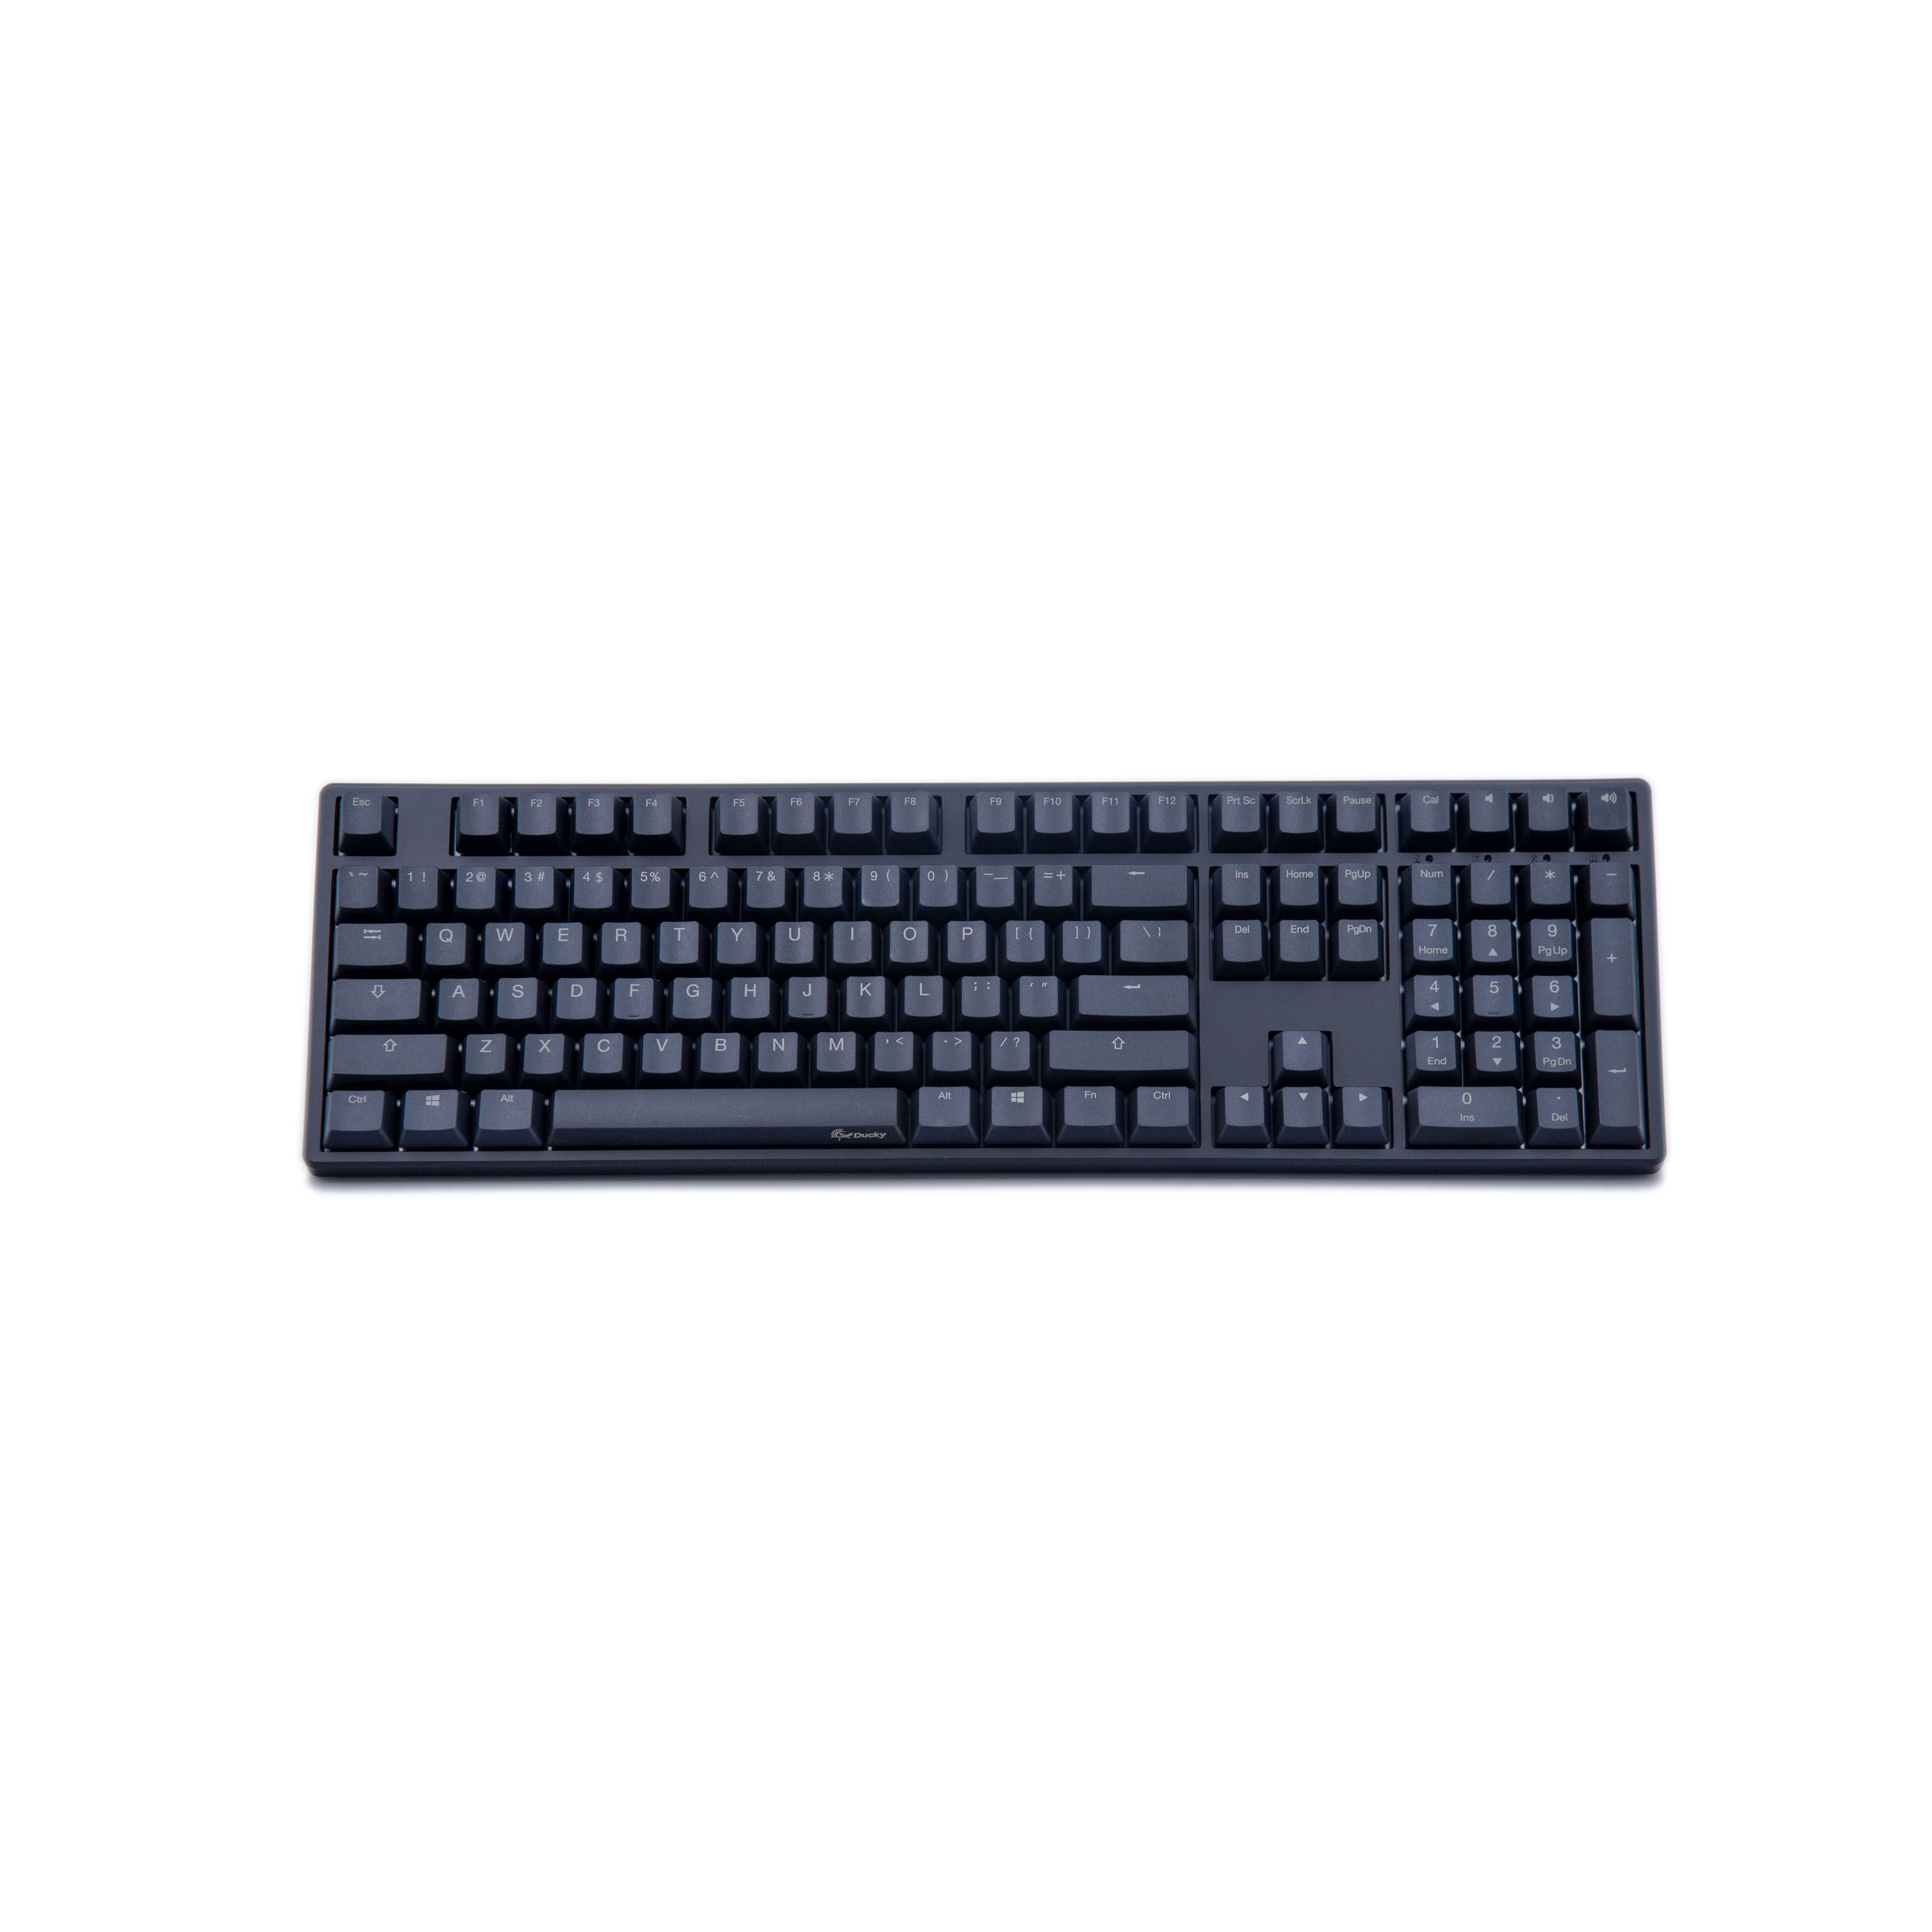 Image of Ducky One DKON1608 Cherry MX Red Non-Backlit Mechanical Keyboard DKON1608-RHKPLAAB1 - Black (US Layout)